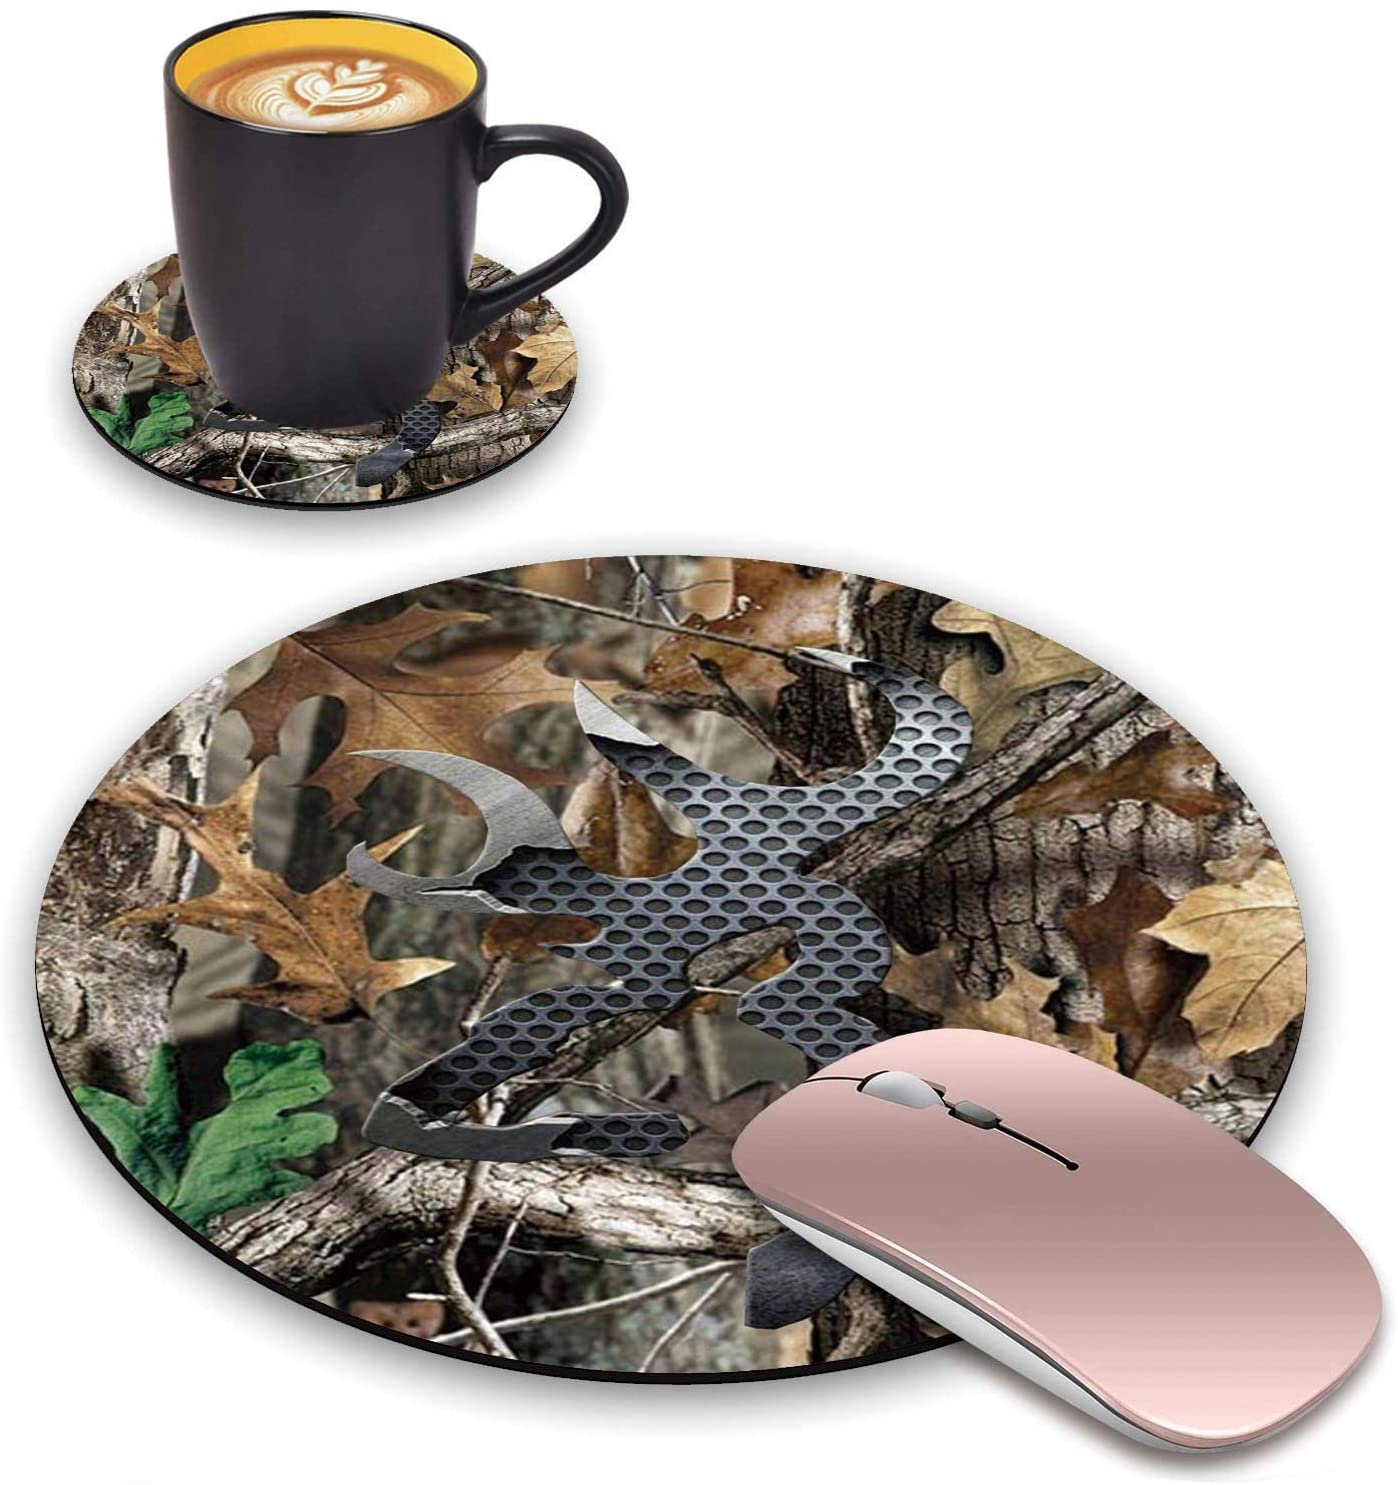 BWOOLL Round Mouse Pad and Coasters Set, Jungle Camo Design Mouse Pad, Non-Slip Rubber Base Mouse Pads for Laptop and Computer